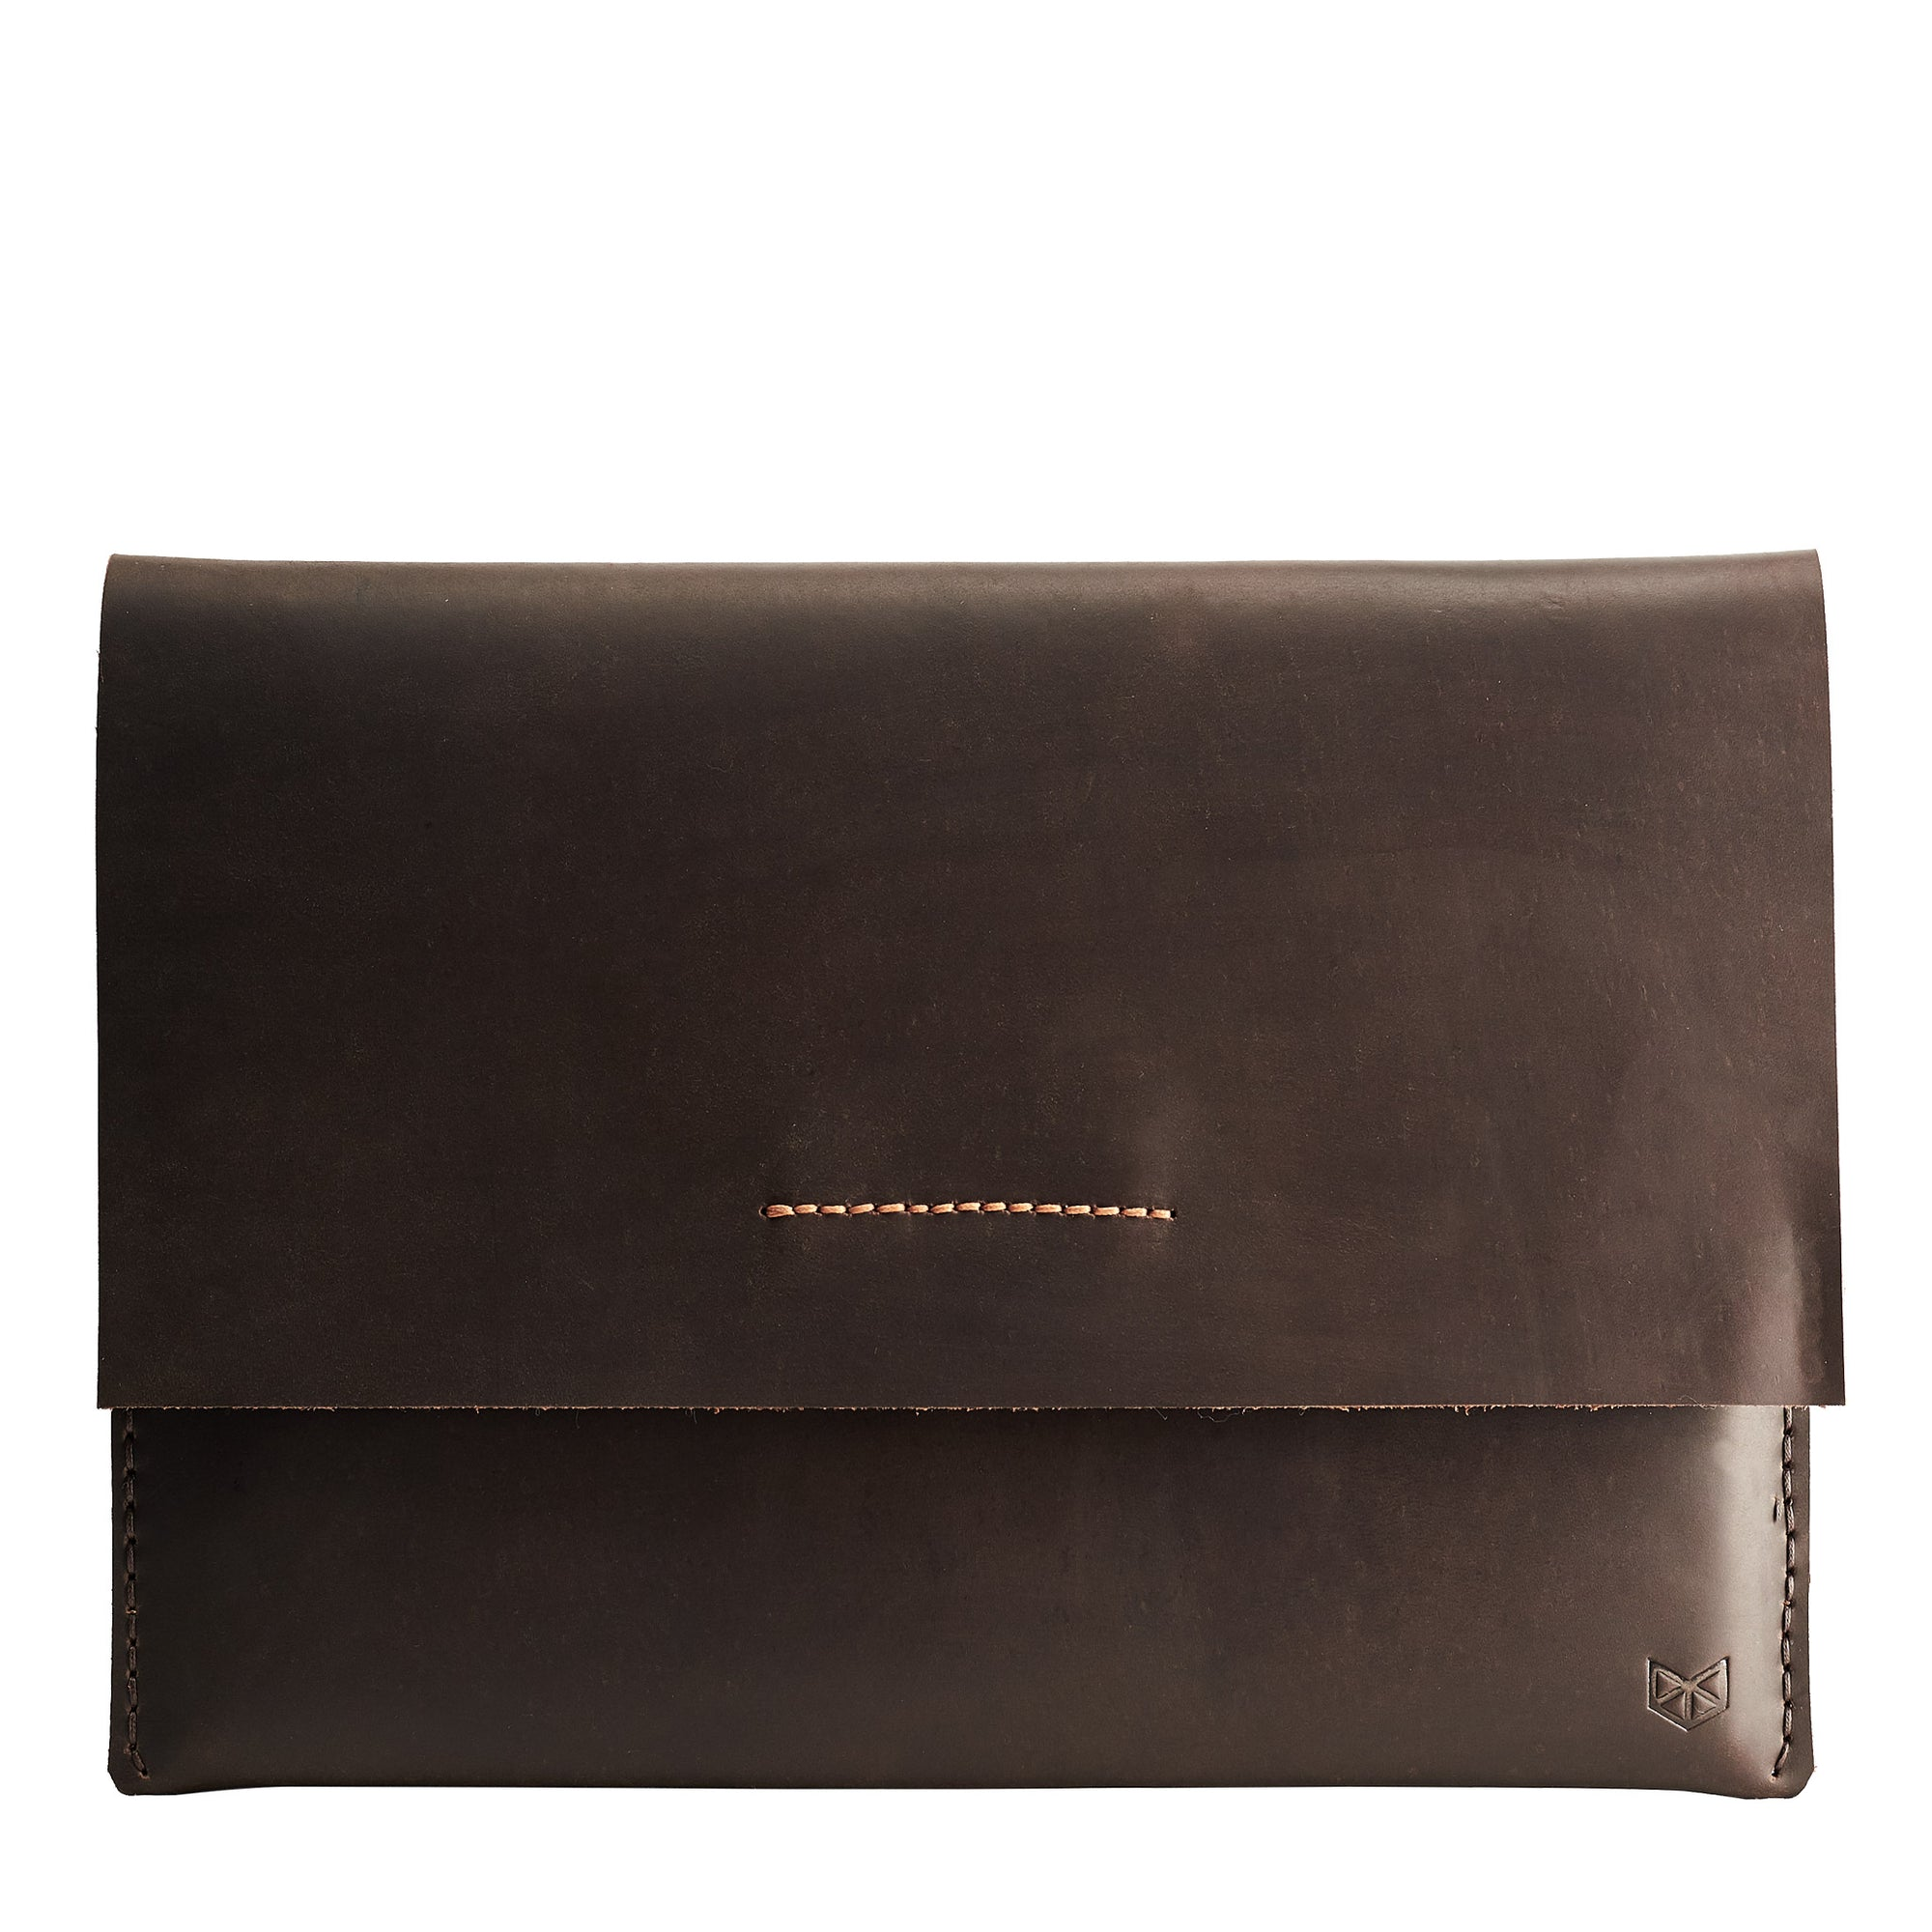 Cover. Leather Google Pixelbook Sleeve brown Case by Capra Leather